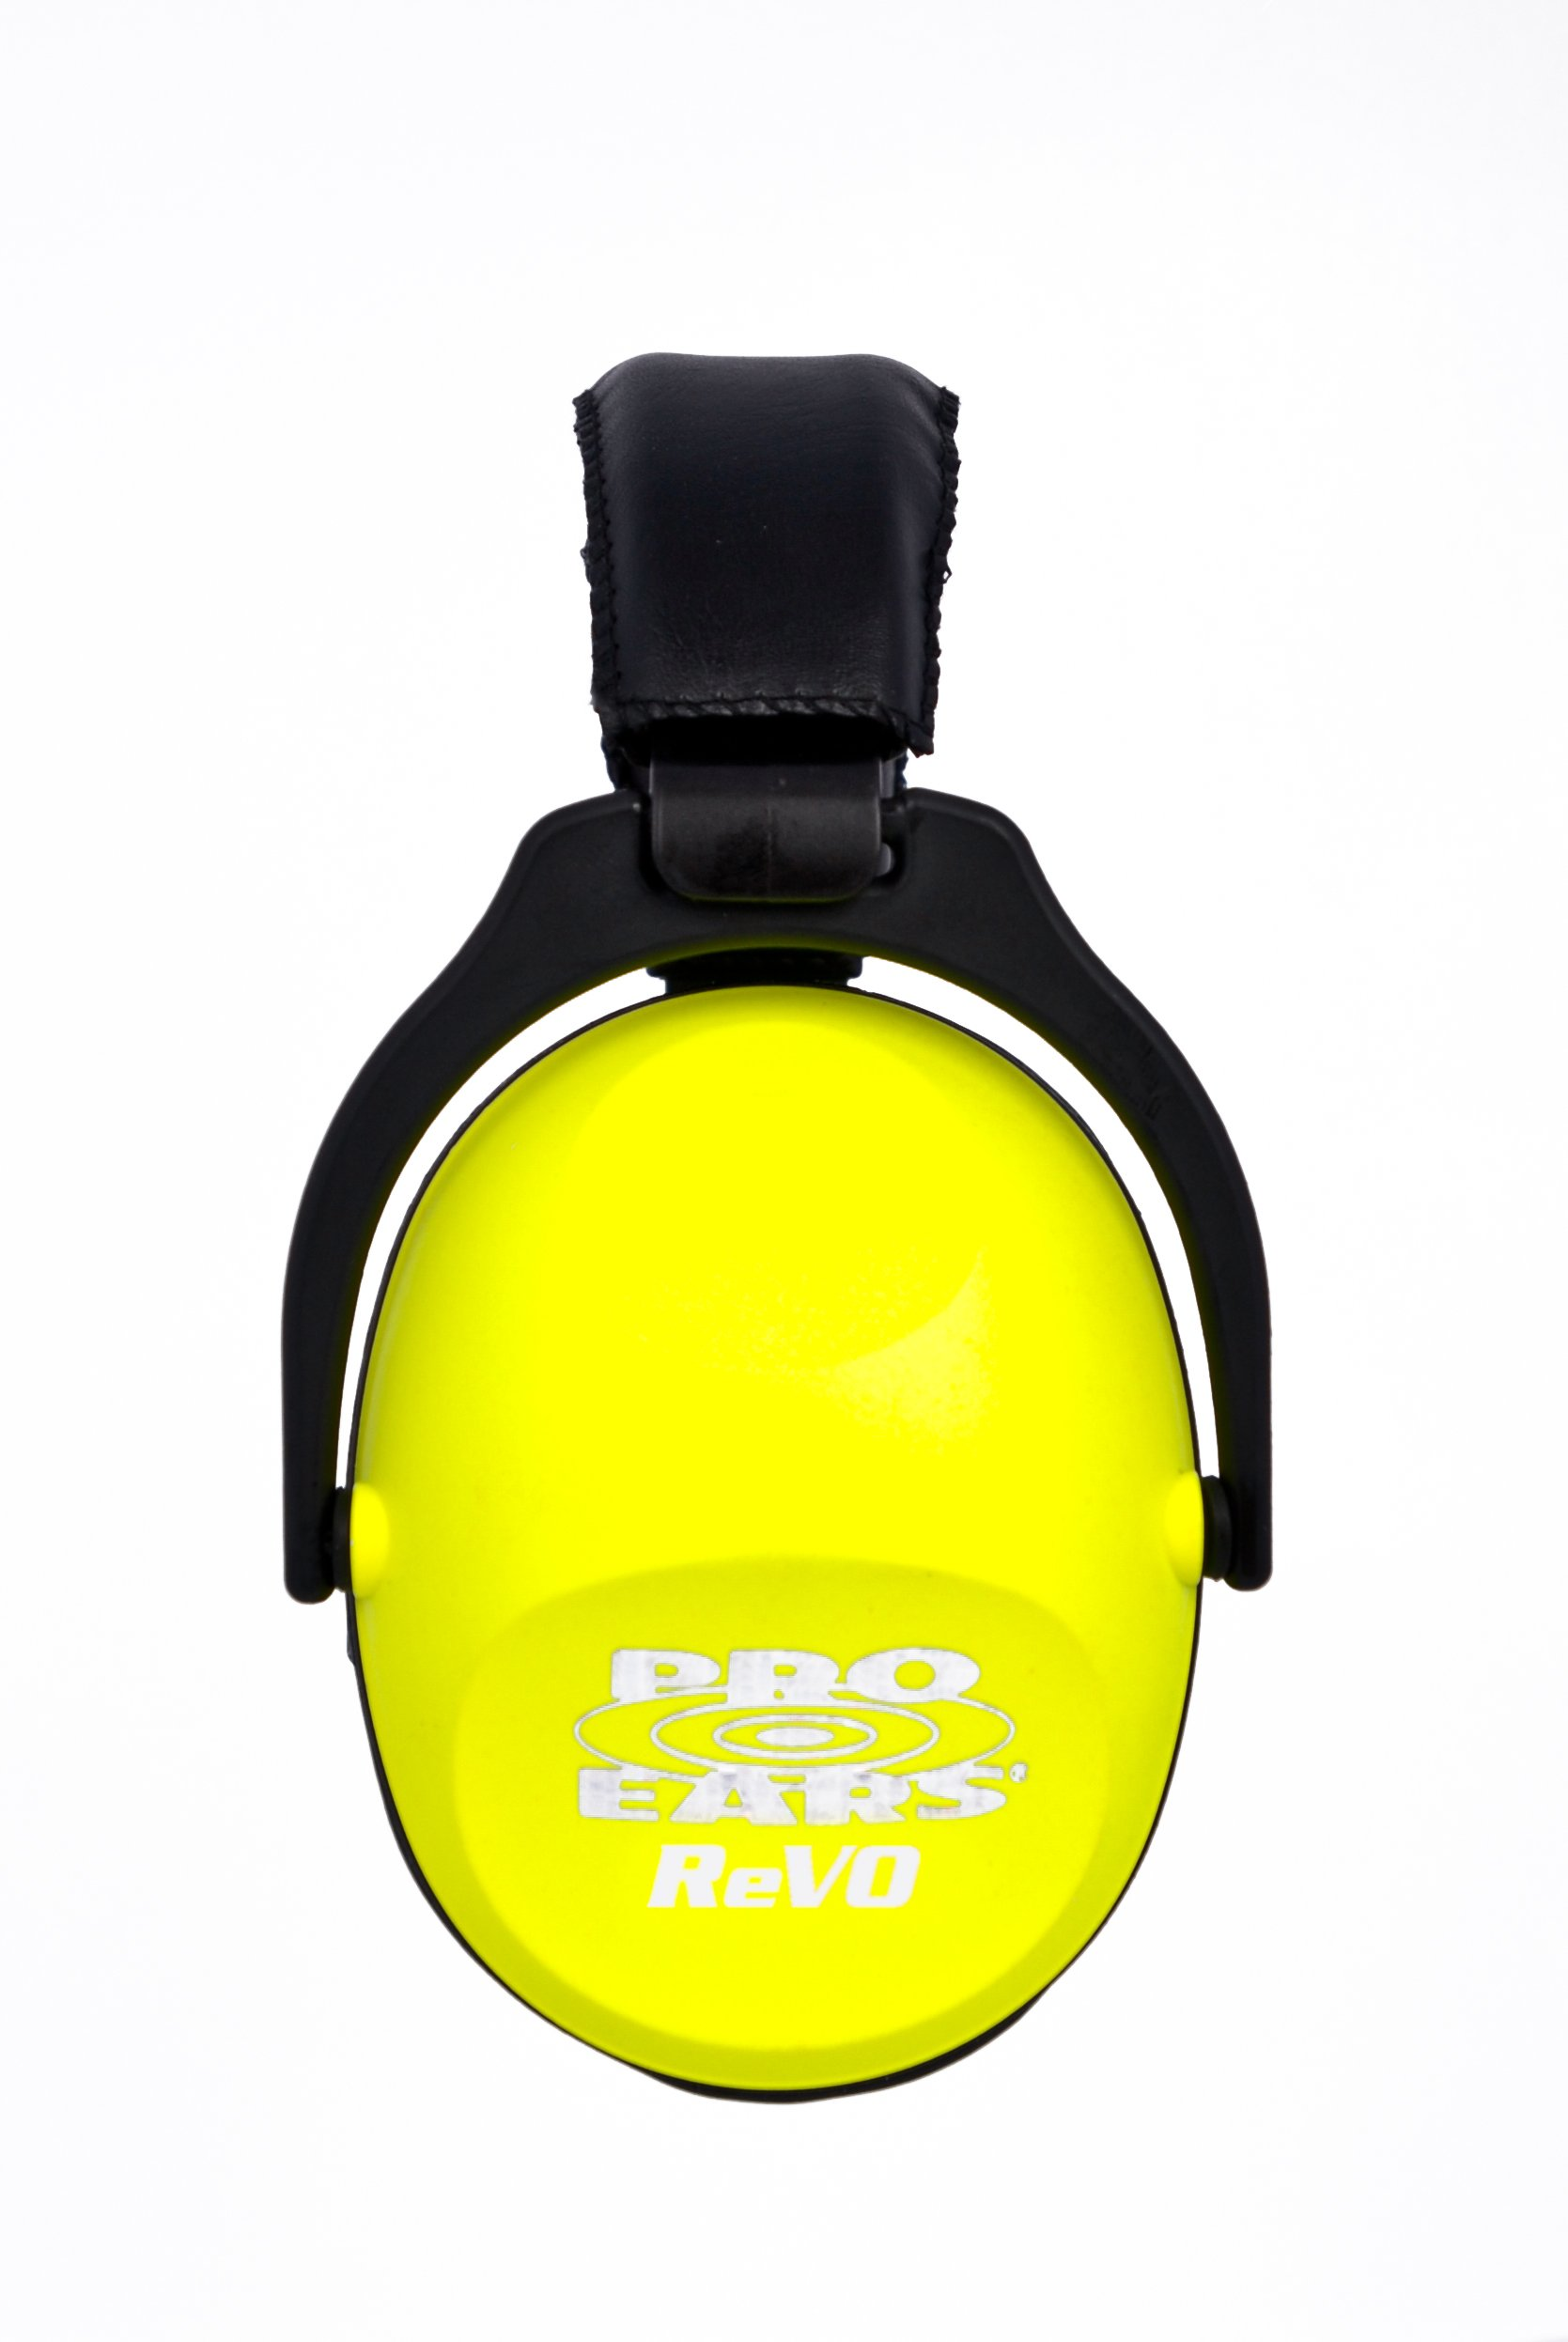 Pro Ears - ReVO - Hearing Protection - NRR 25 - Youth and Women Ear Muffs - Neon Yellow by Pro Ears (Image #2)